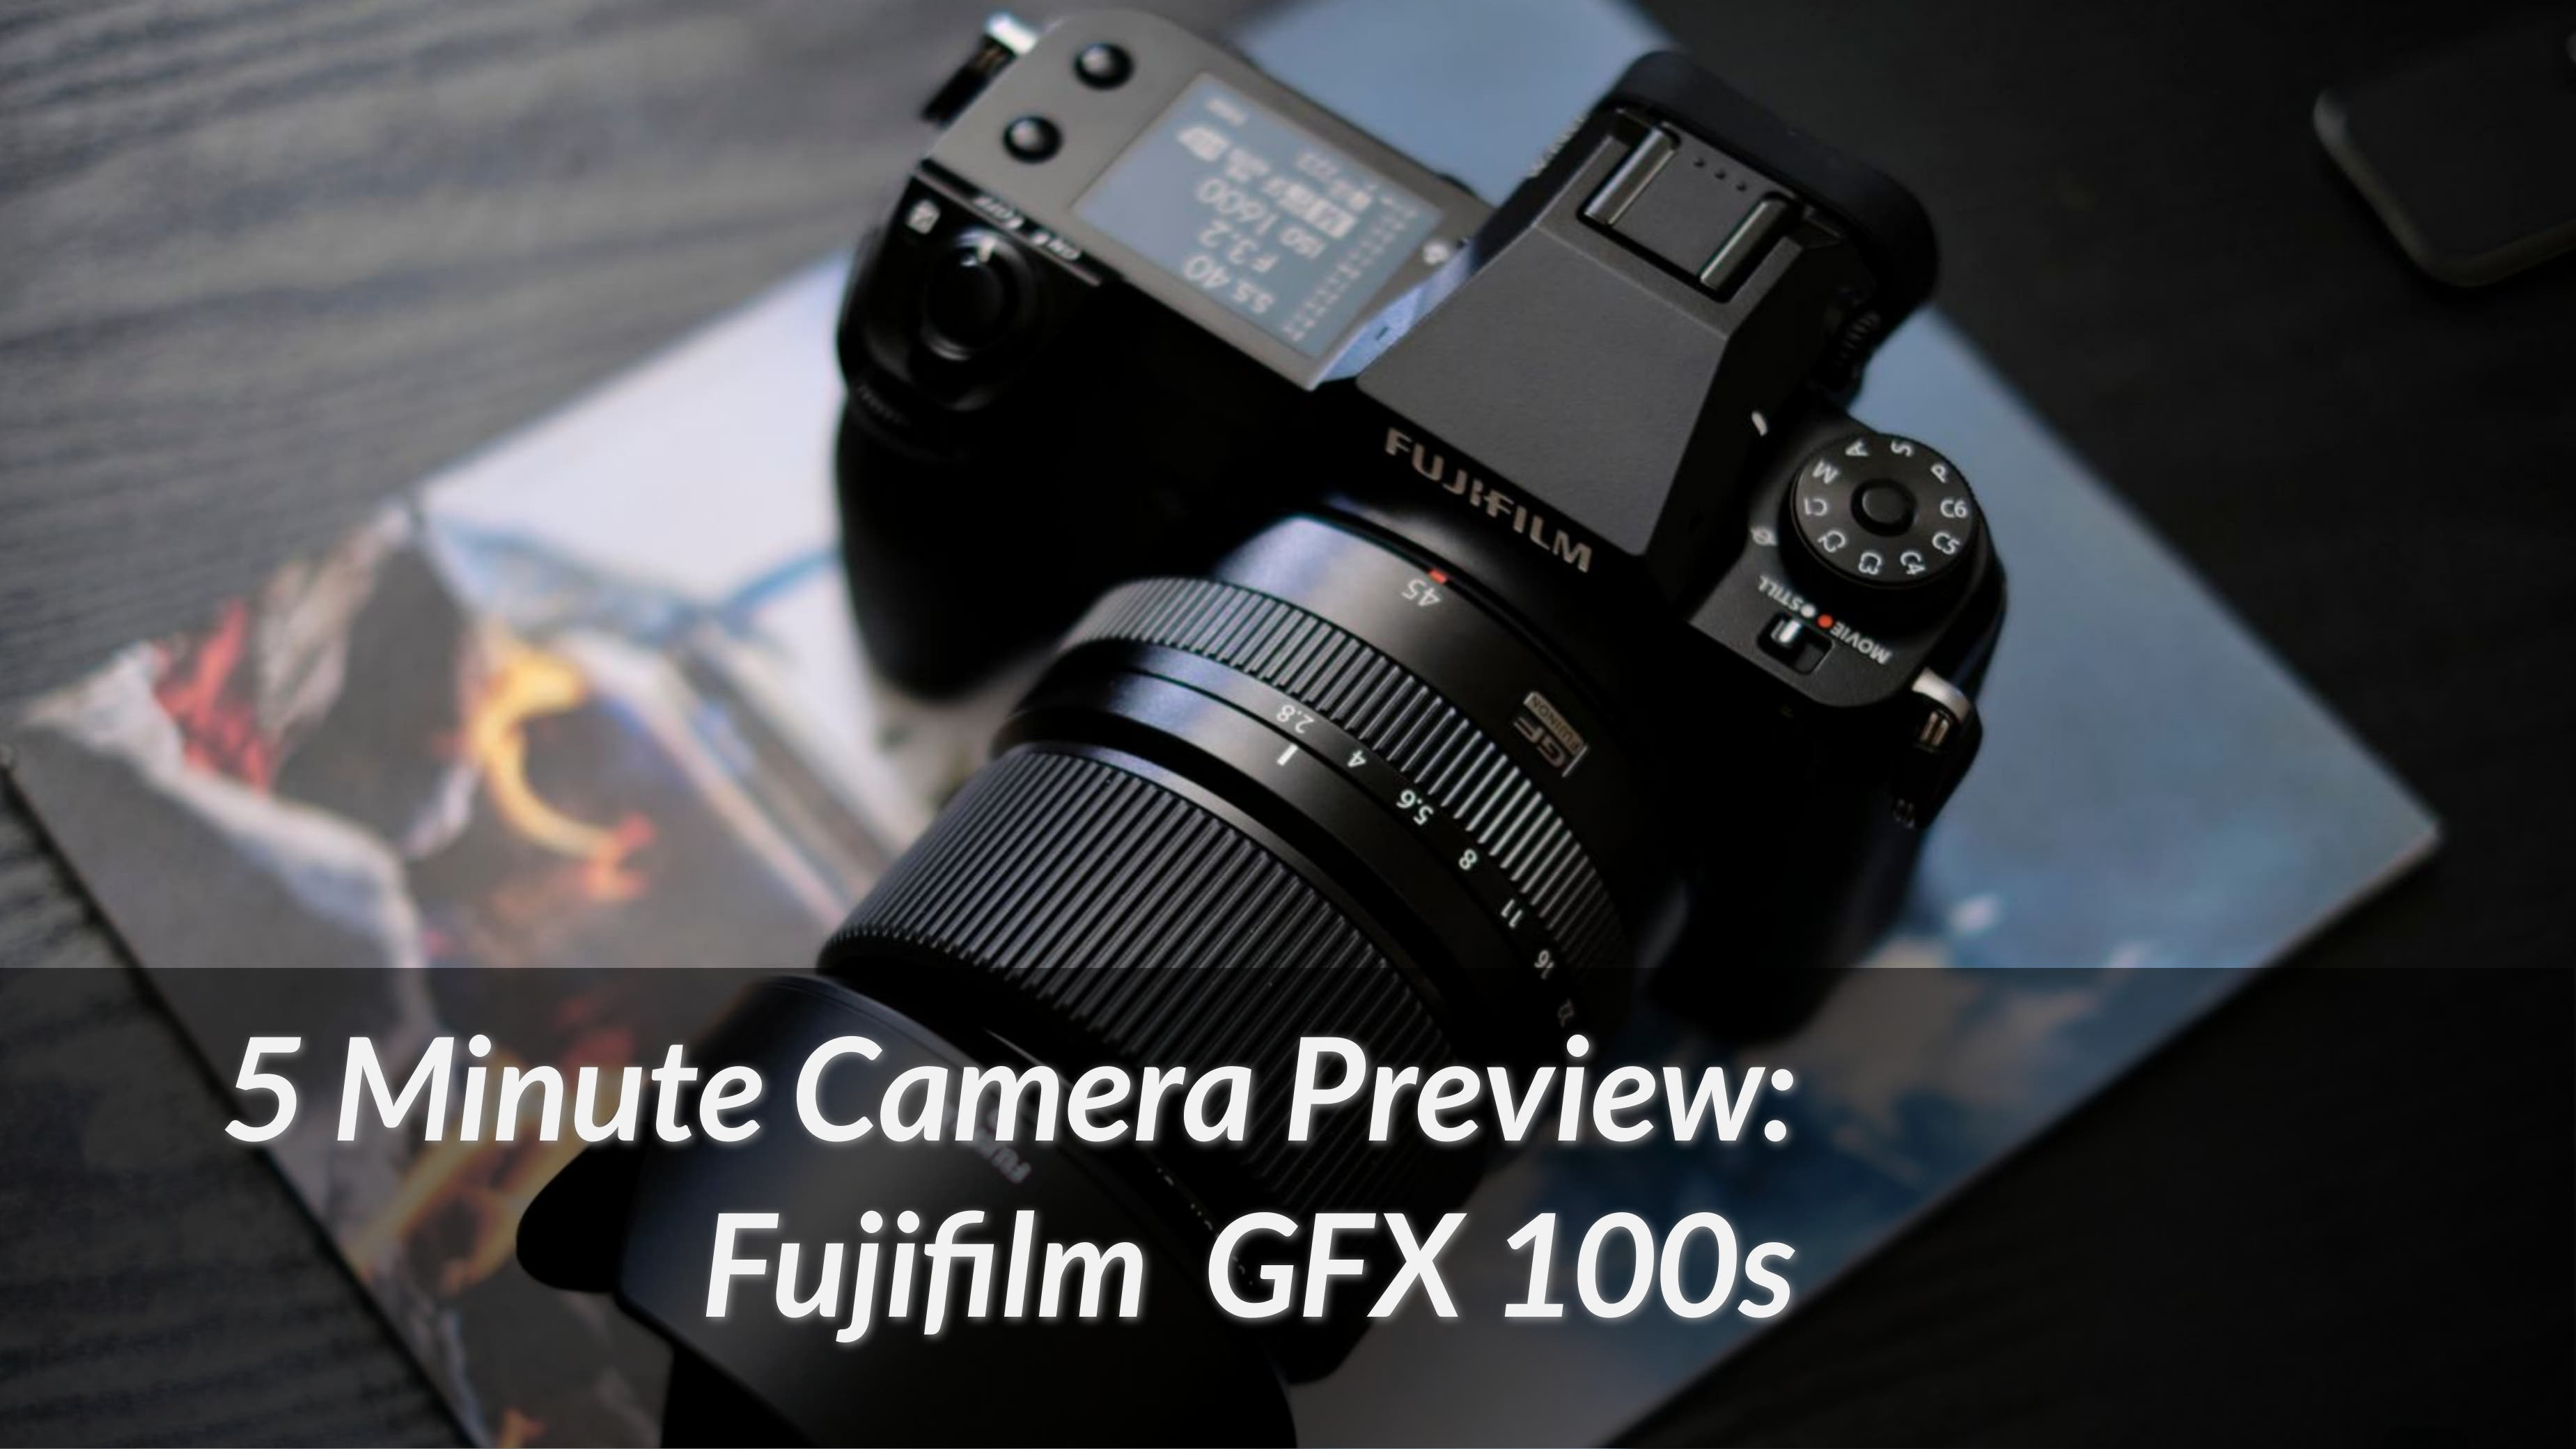 All About the Fujifilm GFX100s in Under 5 Minutes